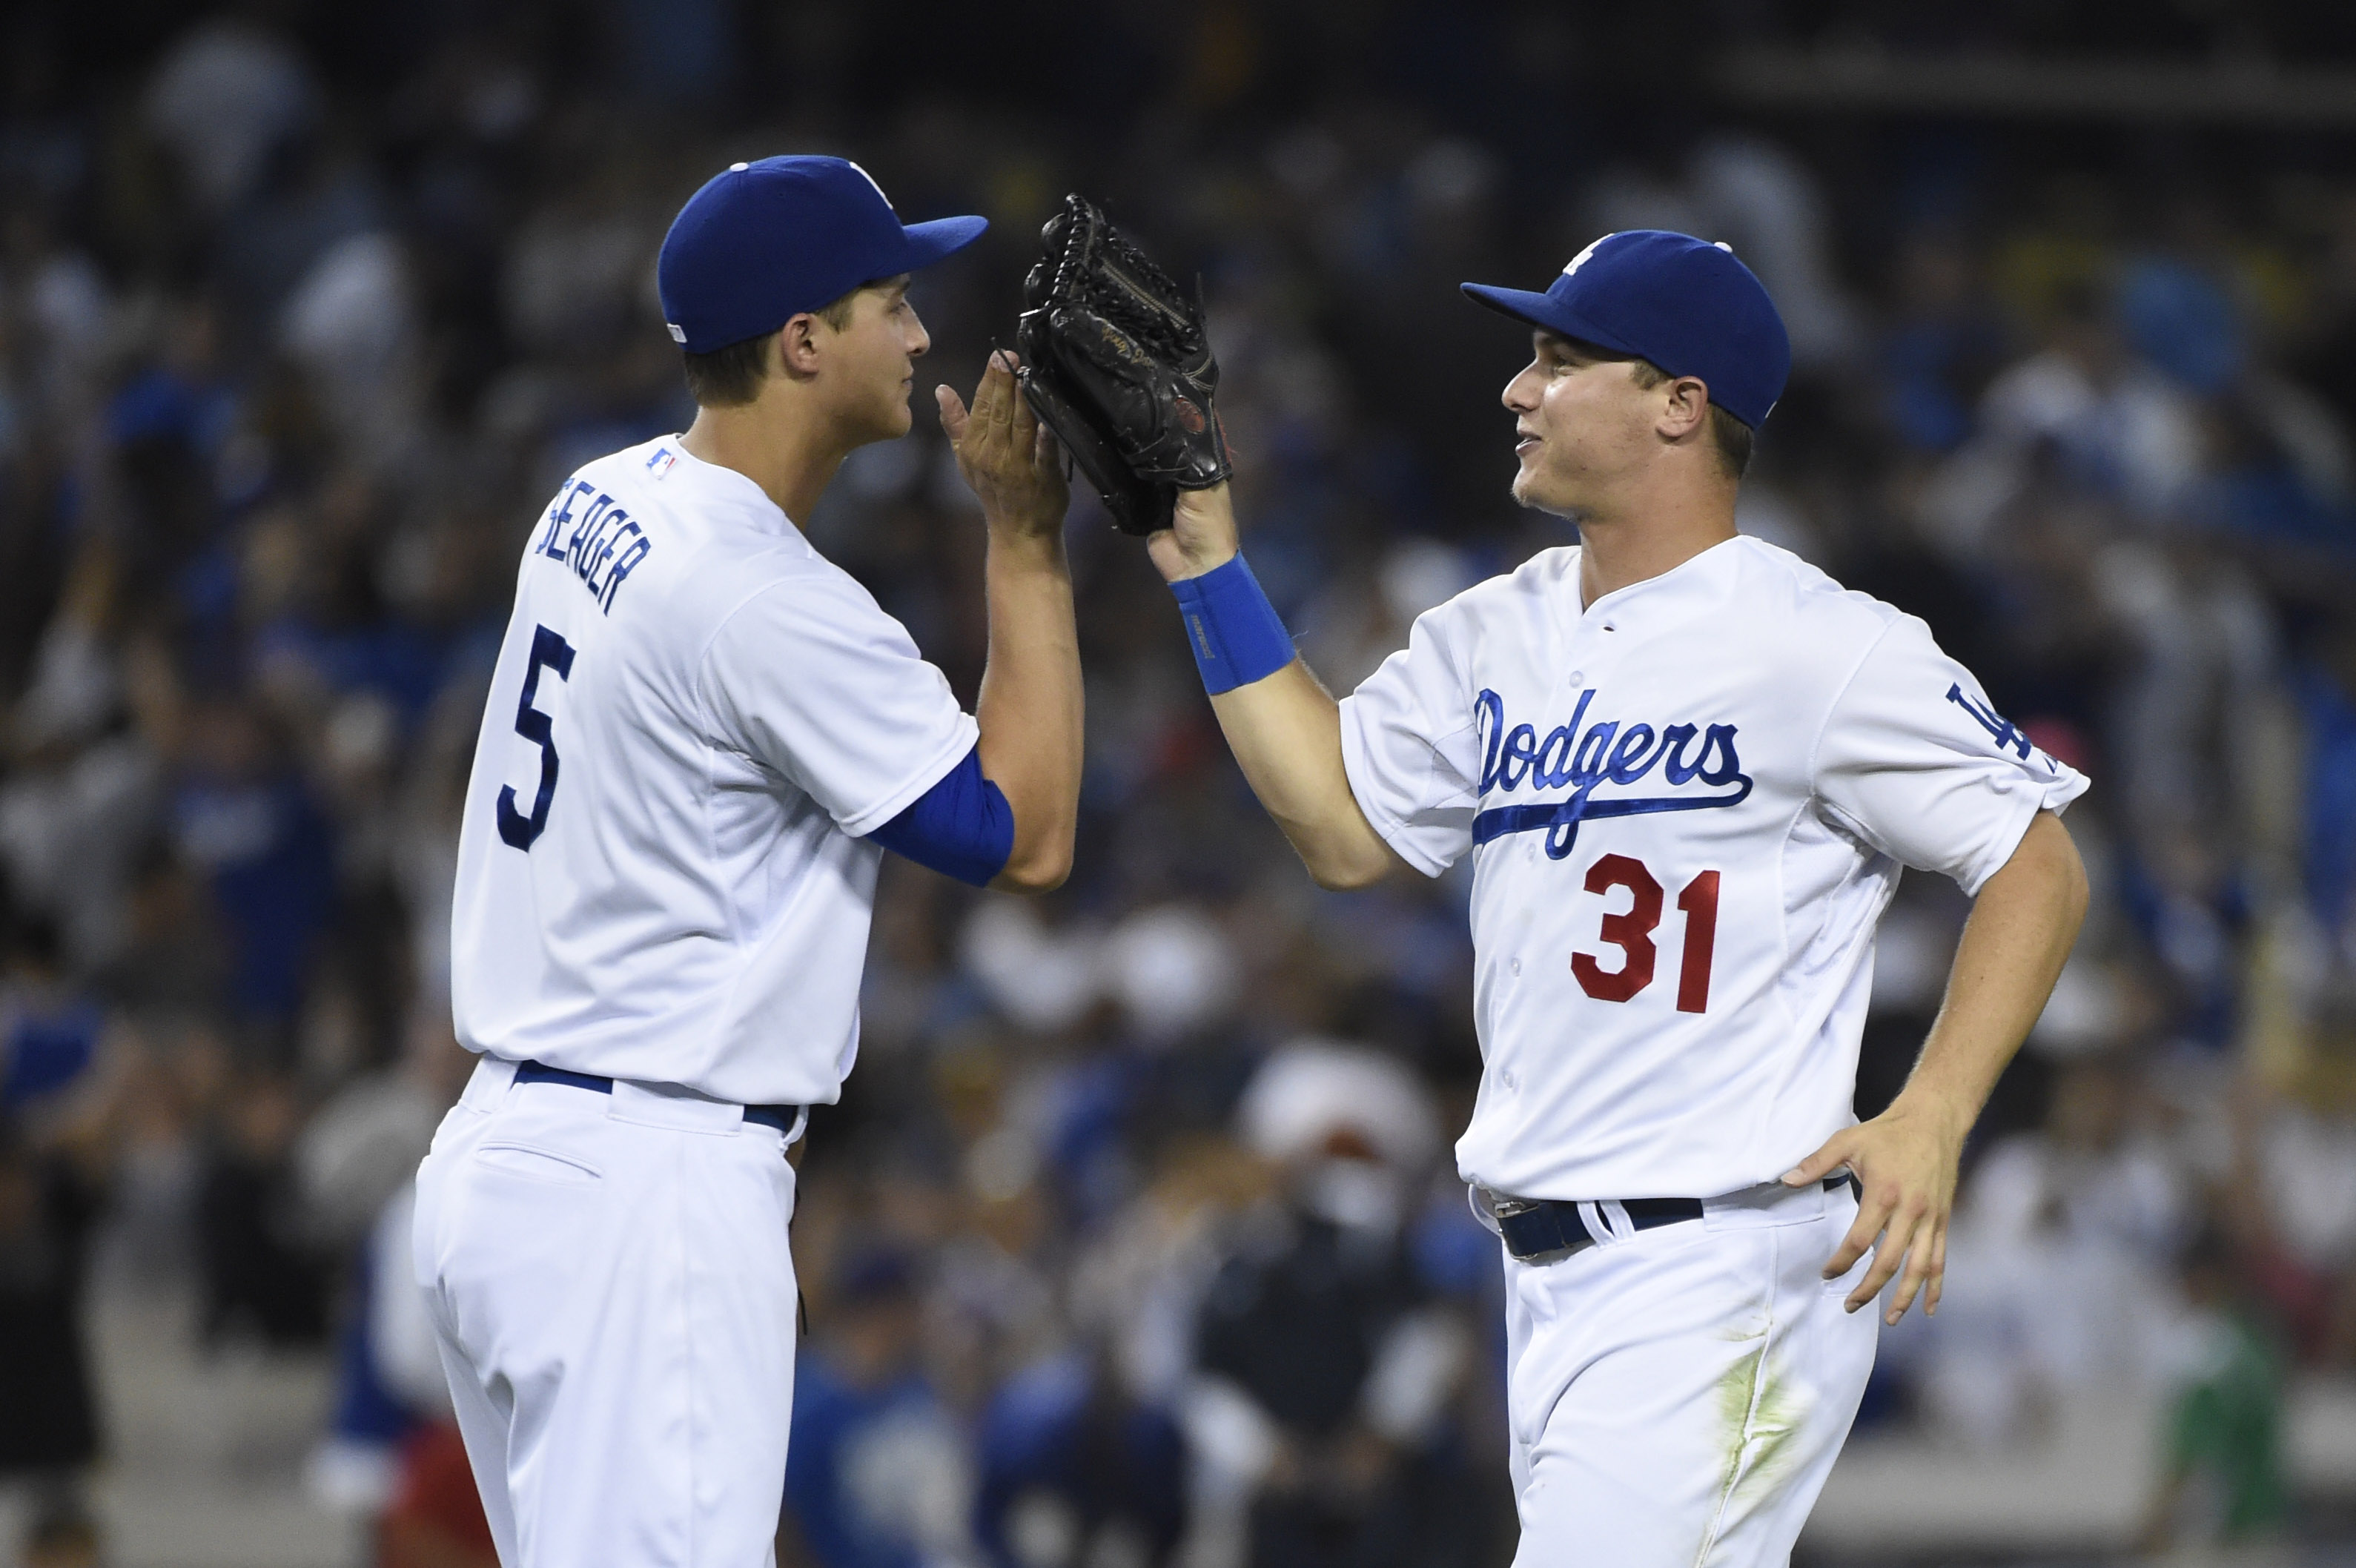 Corey Seager and Joc Pederson will figure greatly in the Dodgers' next five seasons, either directly or indirectly.